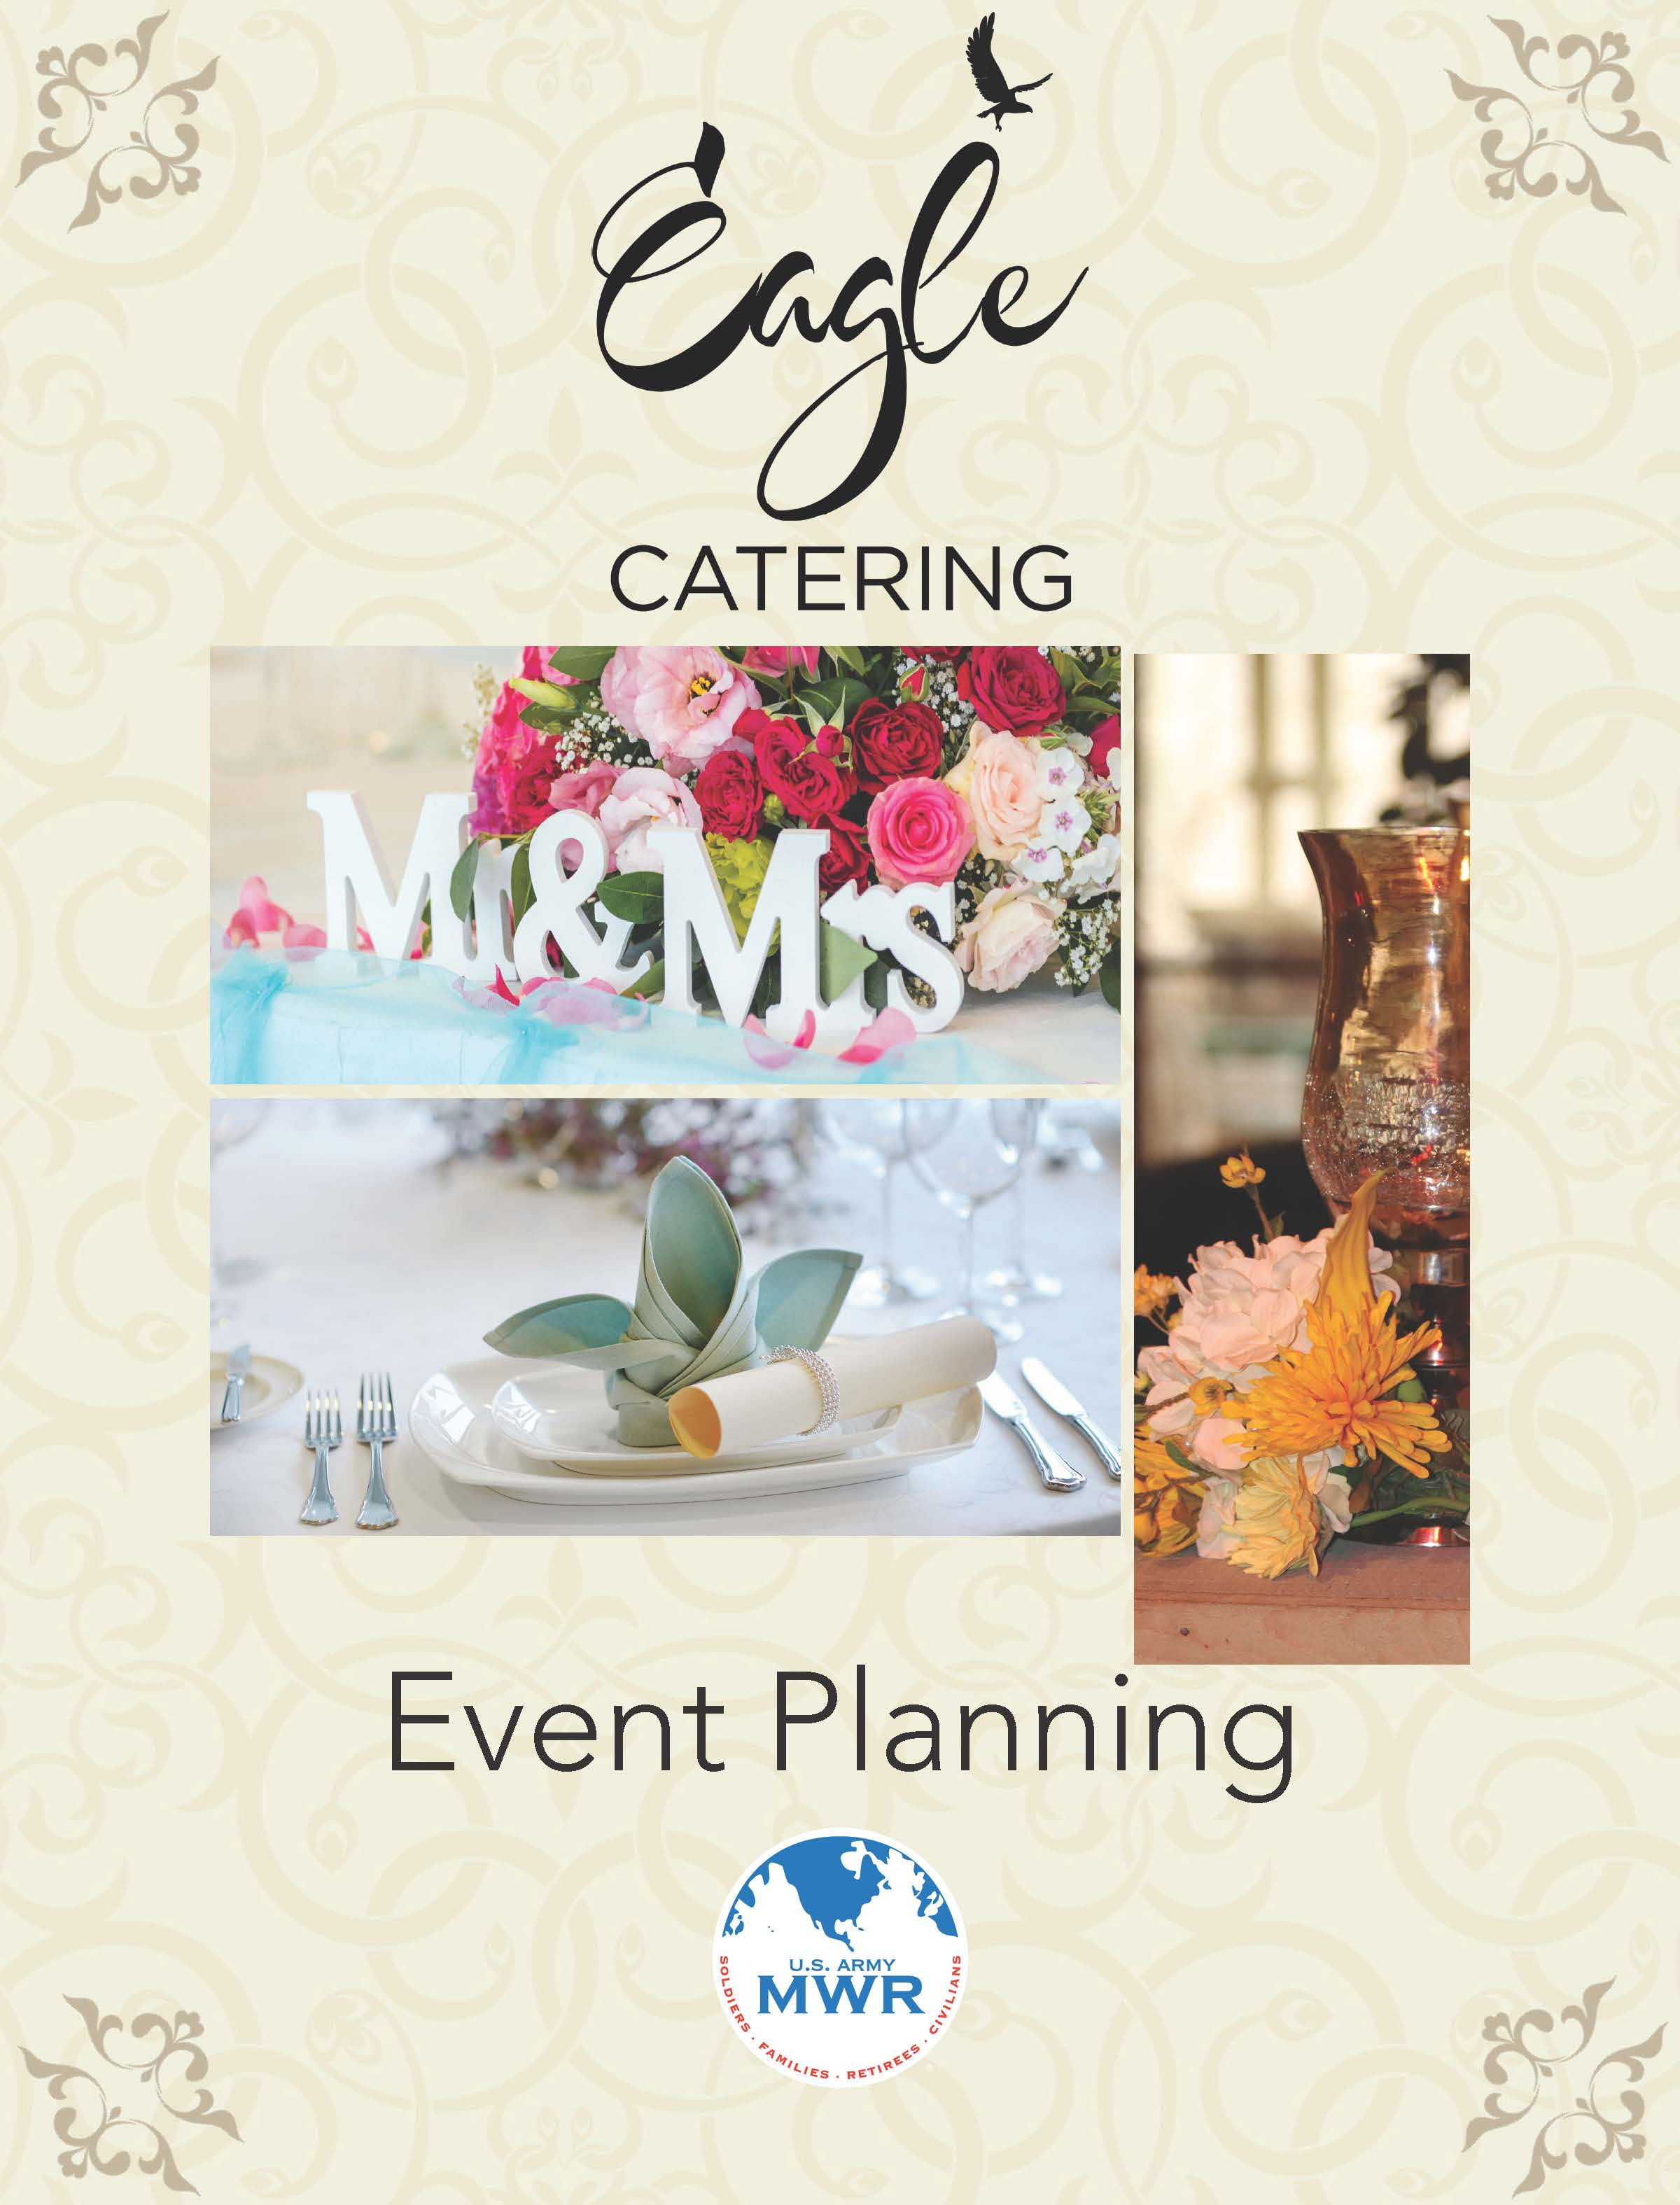 FC-Eagle-Catering-Cover.jpg